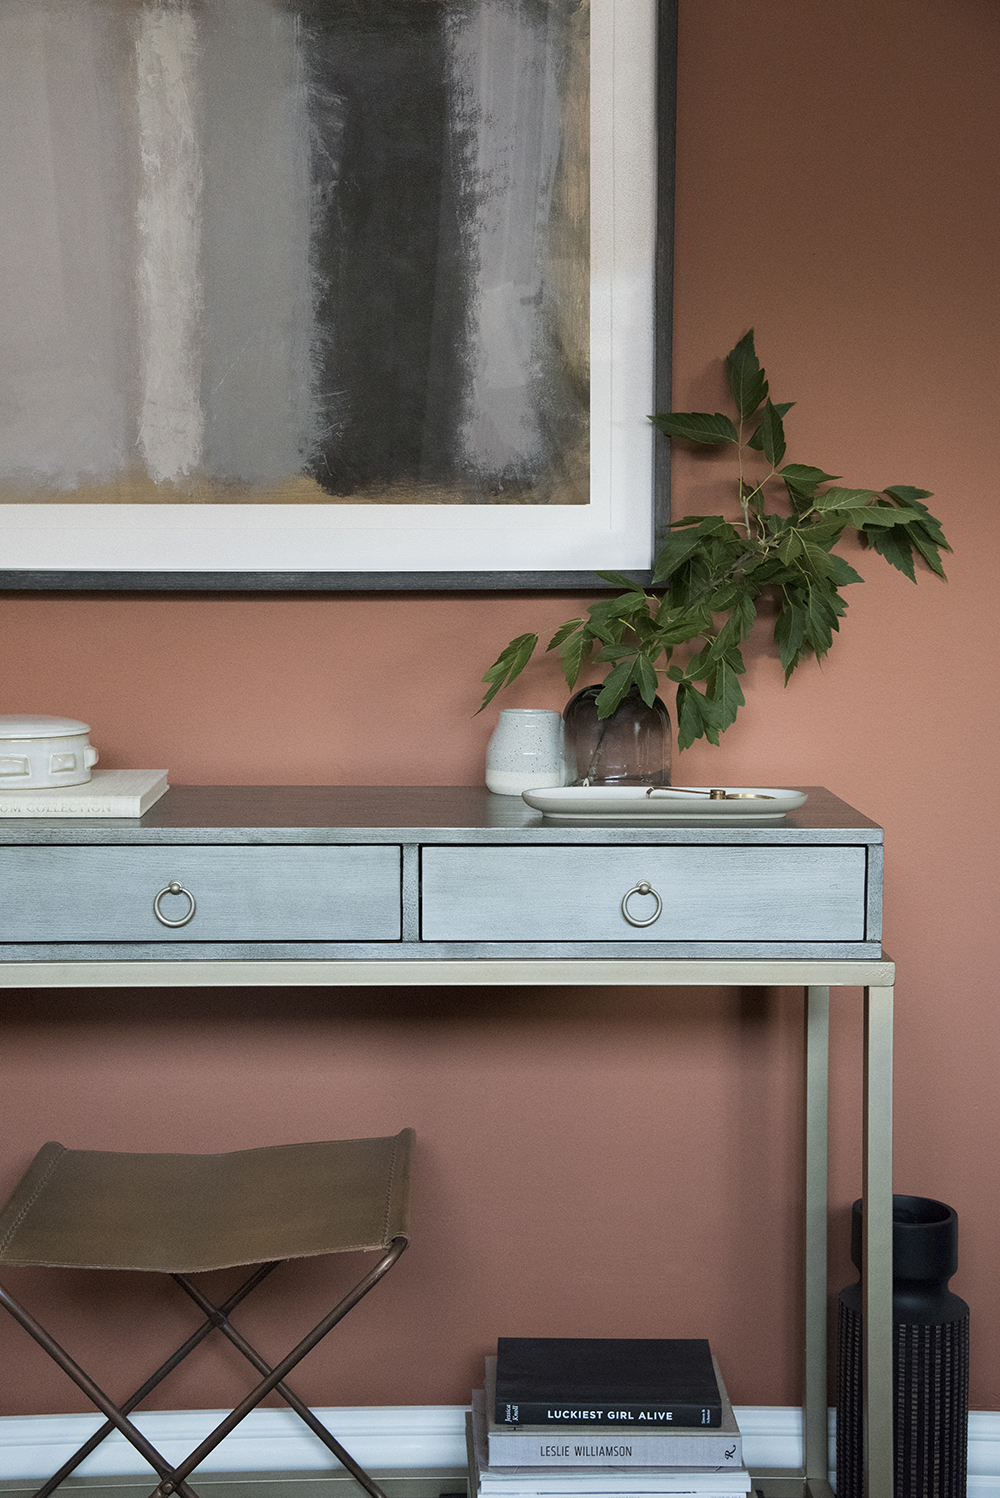 Sherwin-Williams Color of the Year - roomfortuesday.com